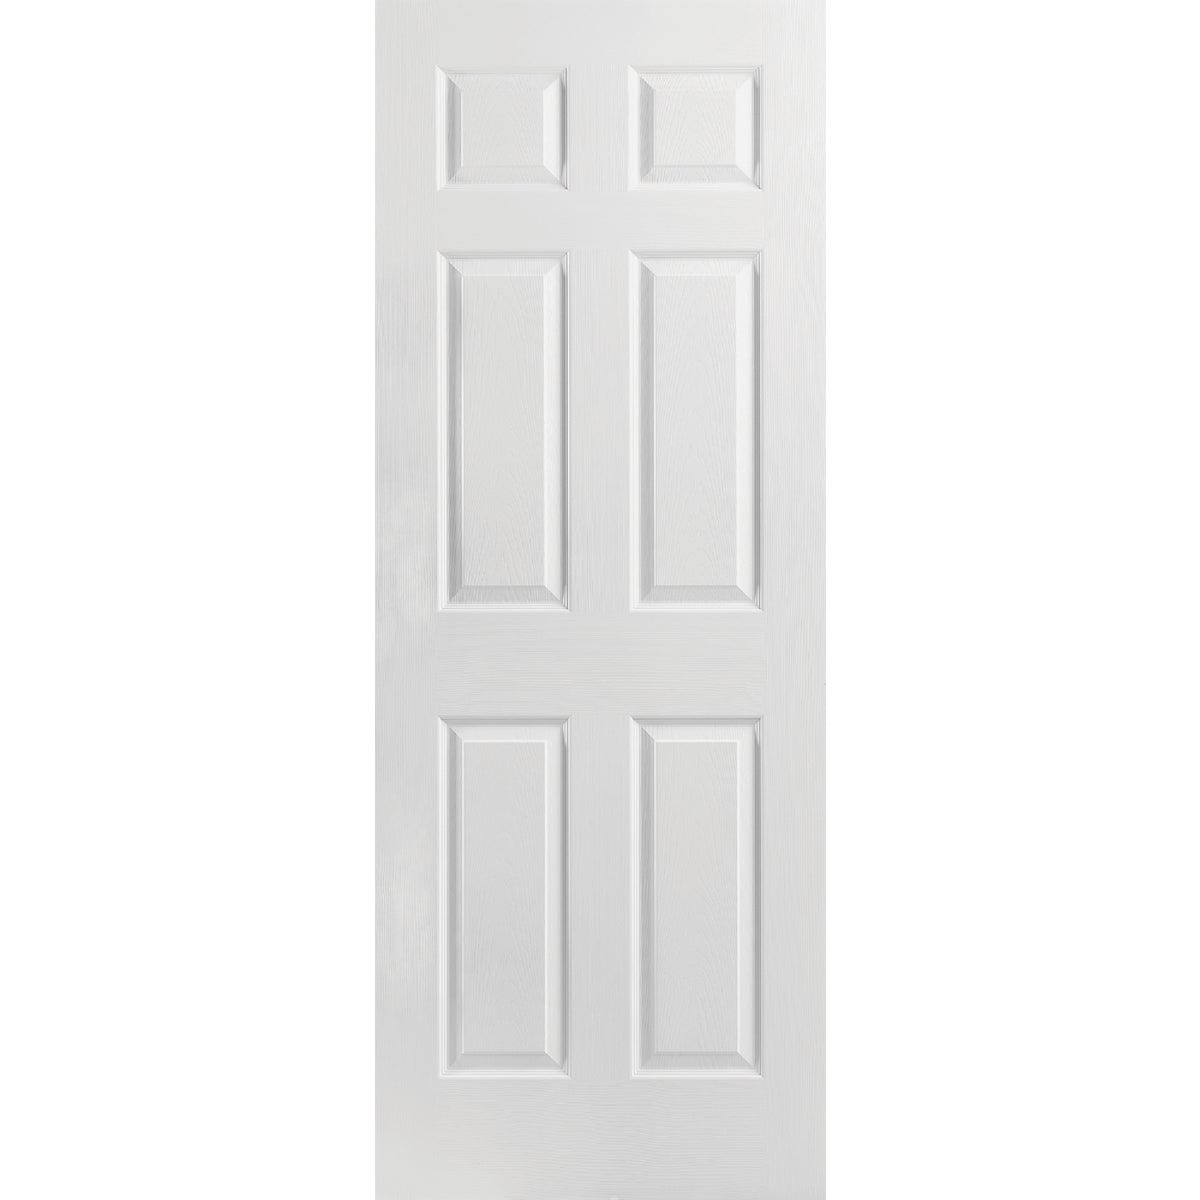 2/6 1-3/8 6PN TX HC DOOR -  by Masonite